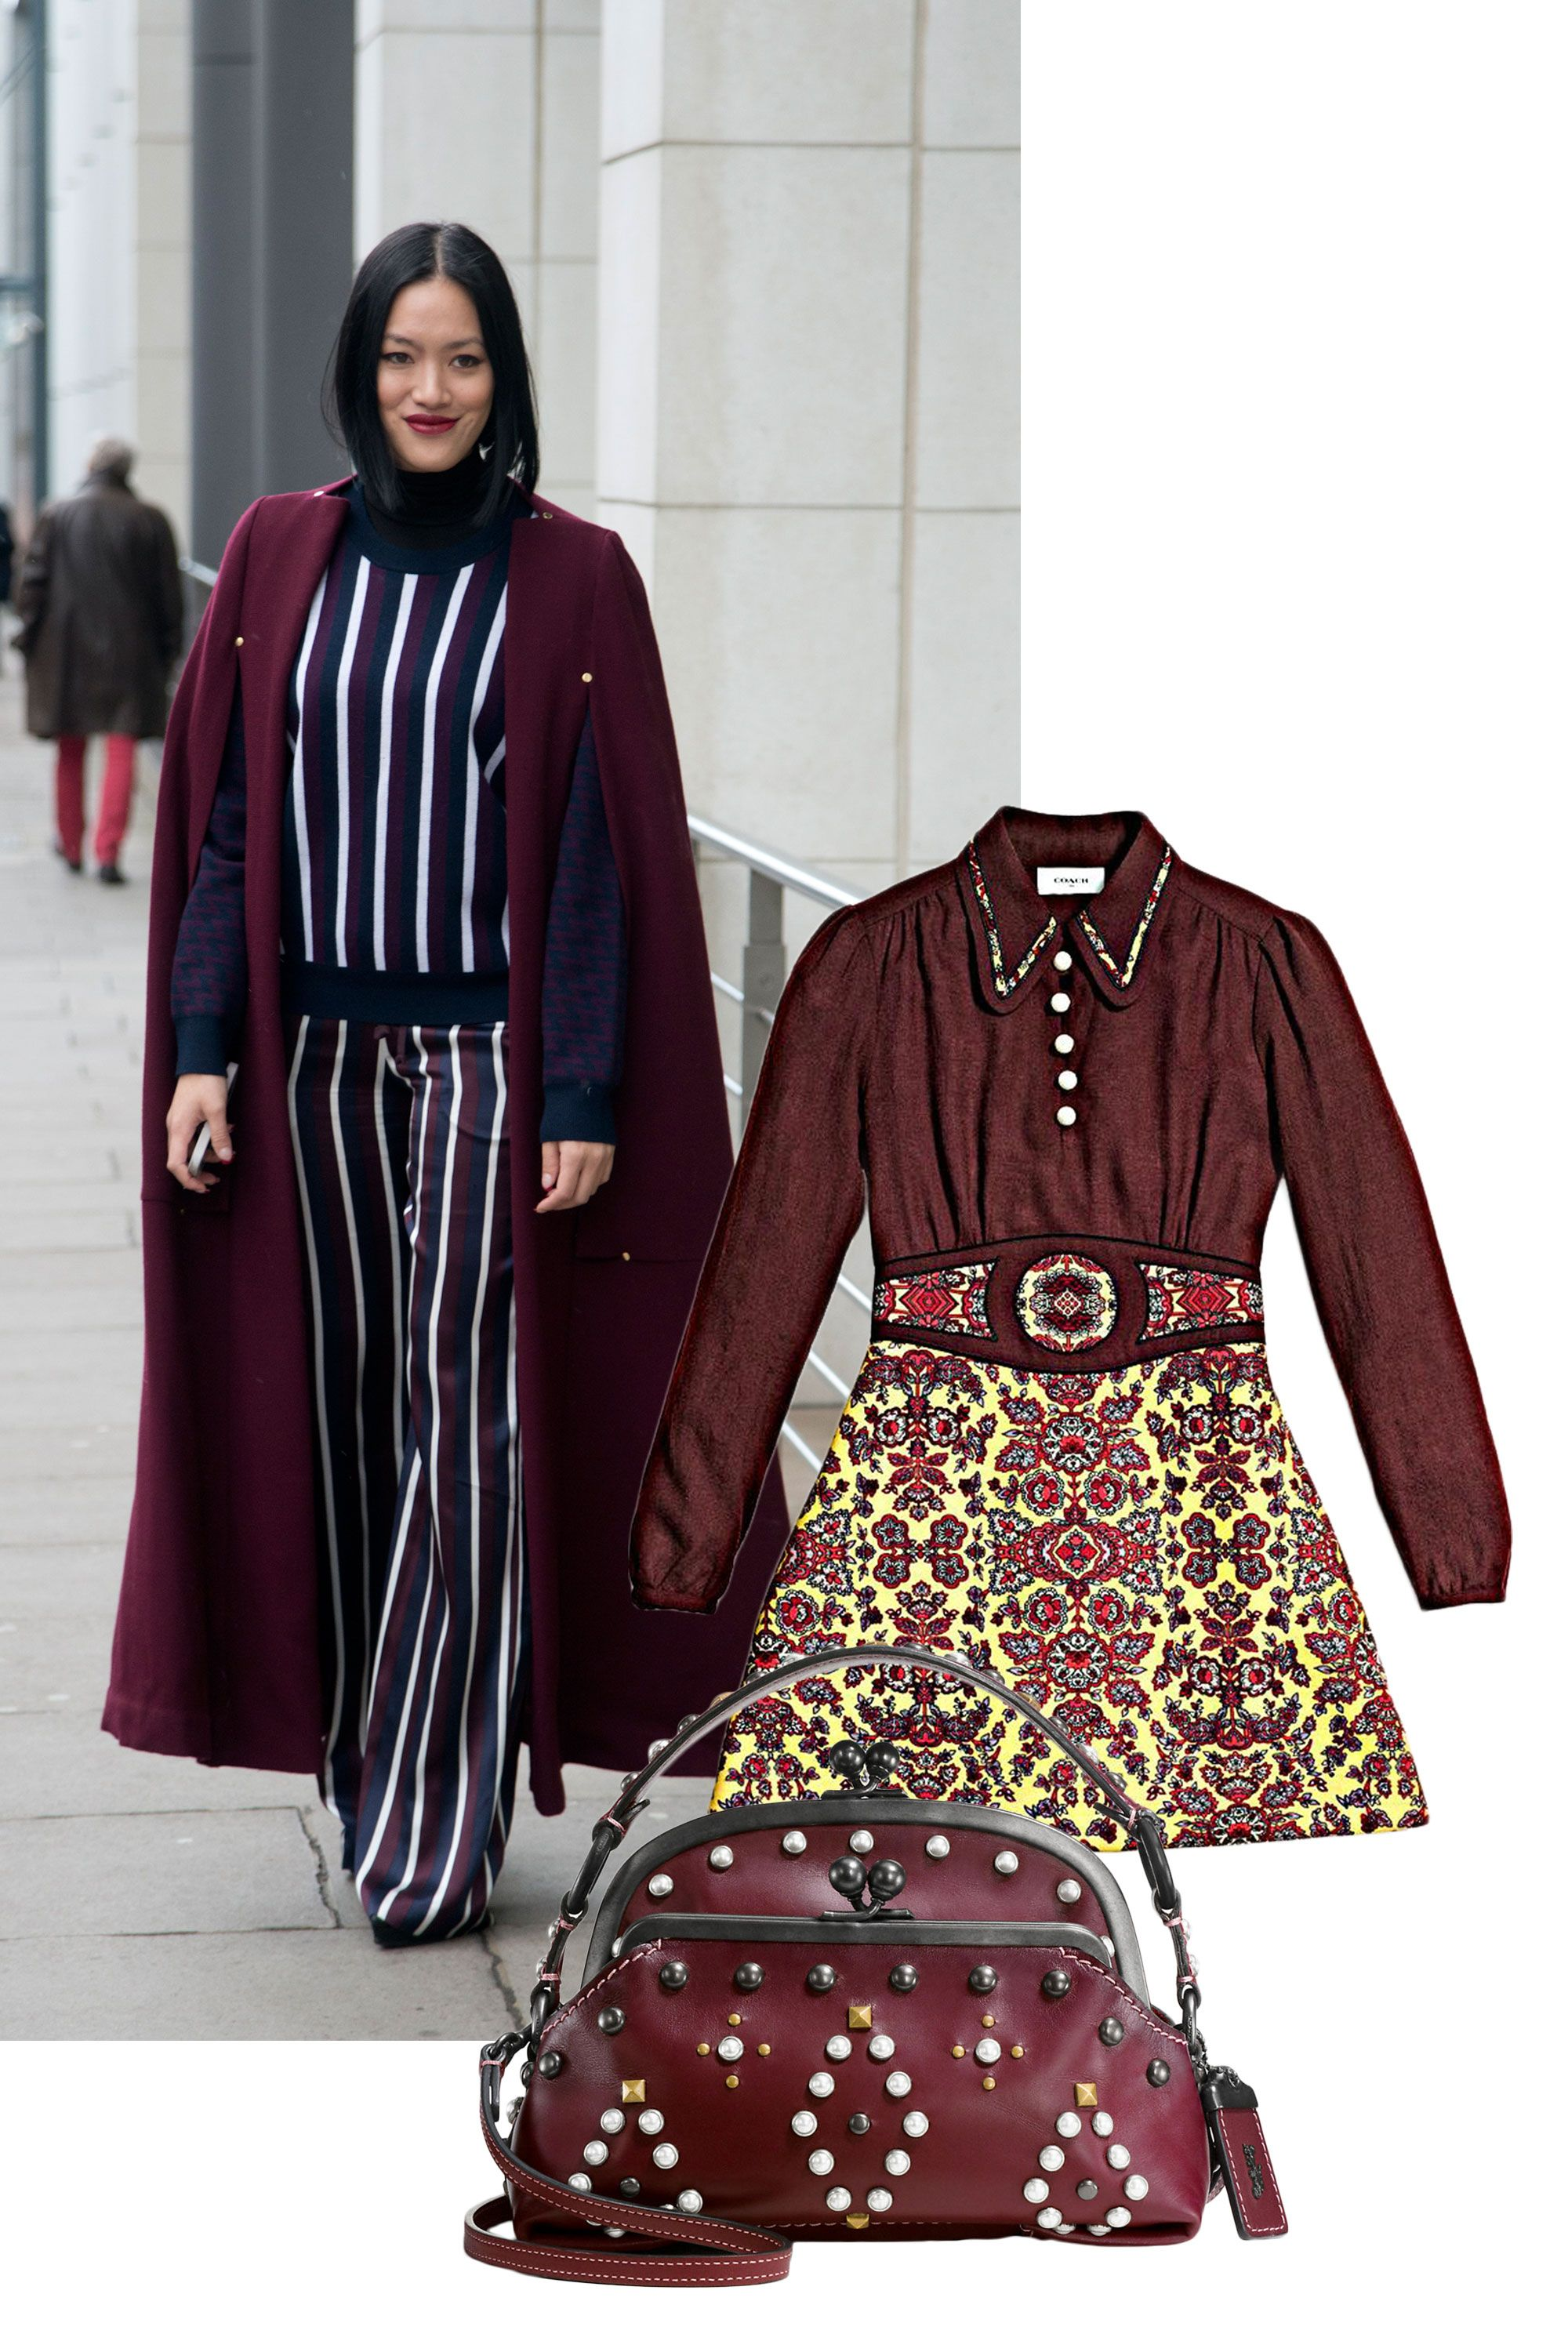 "<p>An autumnal shade that never fades away? Rich burgundy. The deep jewel tone works equally well in clothing and accessories, and anything snapped up <em data-redactor-tag=""em"" data-verified=""redactor"">this</em> fall can be worn for years to come.</p><p><em data-redactor-tag=""em"" data-verified=""redactor"">Coach 1941 Forest Flower Varsity Dress, $695, <a rel=""noskim"" href=""http://www.coach.com/coach-designer-dresses-forest-flower-varsity-dress-with-collar/56385.html?CID=D_B_ELL_11591"" target=""_blank"">coach.com</a>; Coach 1941 Western Rivets Outlaw Satchel</em><em data-redactor-tag=""em"" data-verified=""redactor"">, $495, <a rel=""noskim"" href=""http://www.coach.com/western-rivets-triple-frame-outlaw-satchel-in-glovetanned-leather/56560.html?dwvar_color=BPBOR&CID=D_B_ELL_11883"" target=""_blank"">coach.com</a></em></p>"